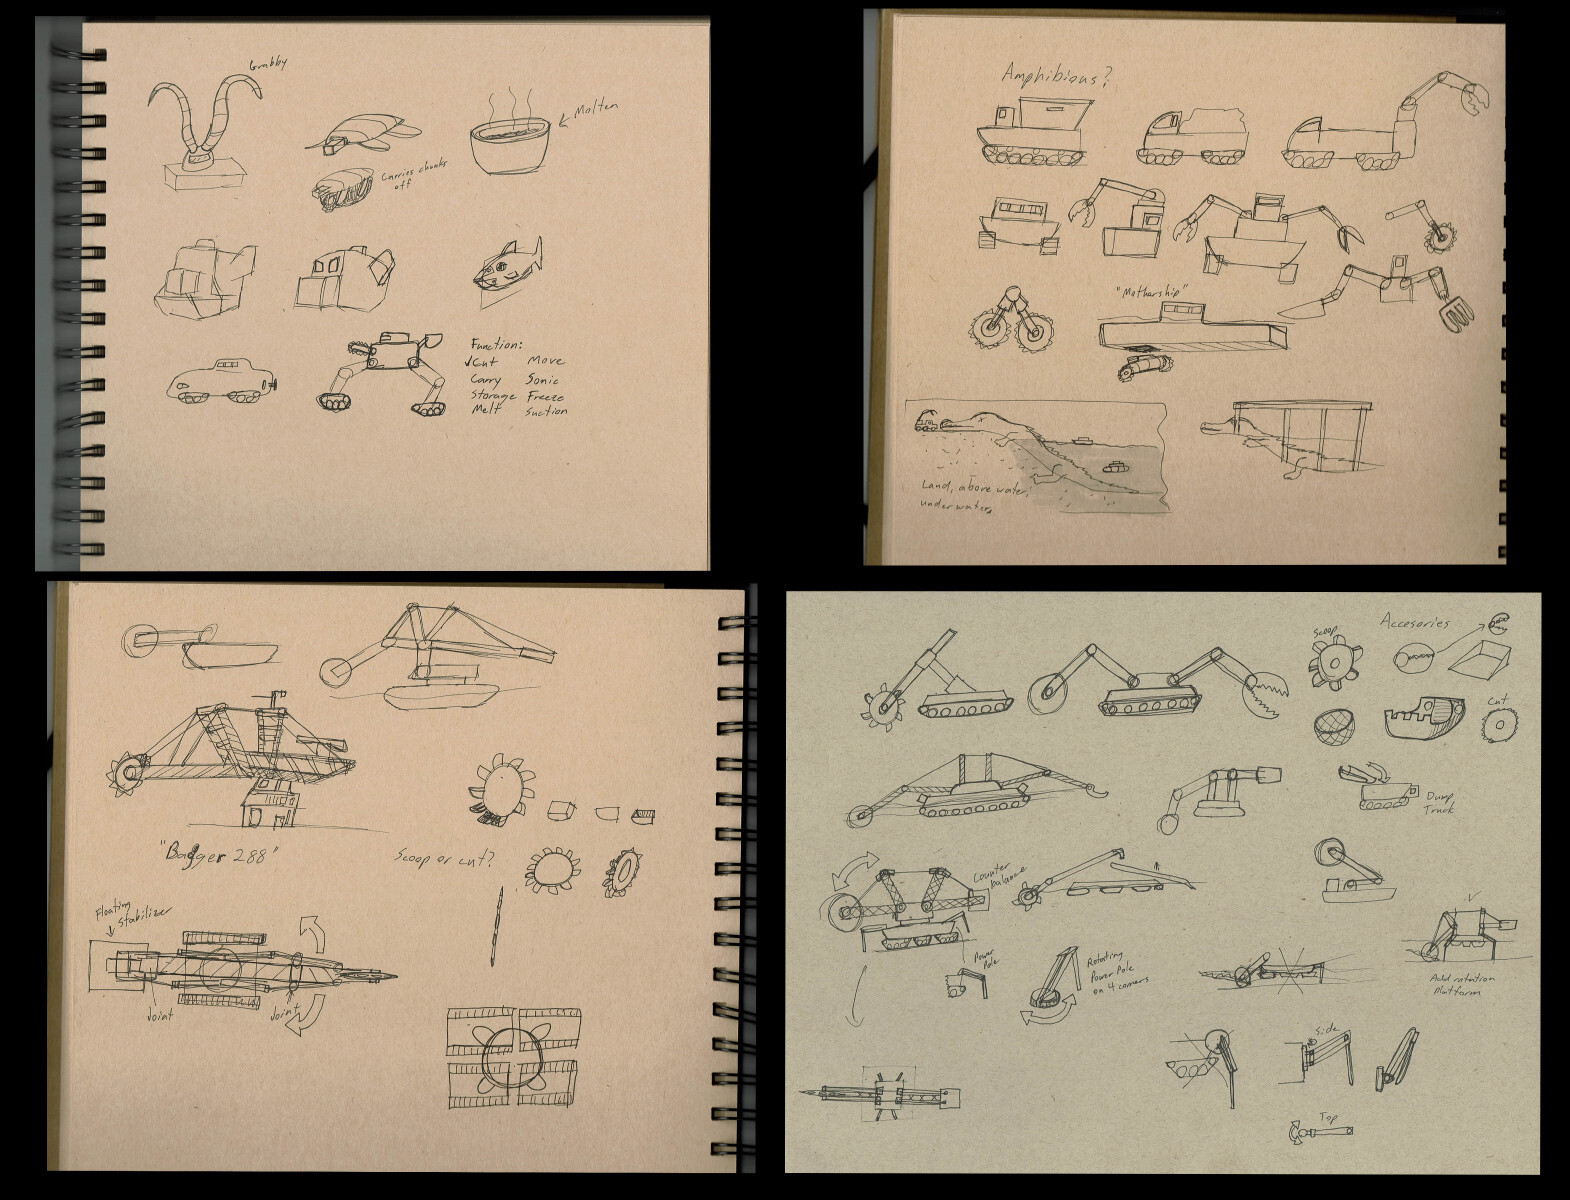 Some early brainstorming and iteration sketches